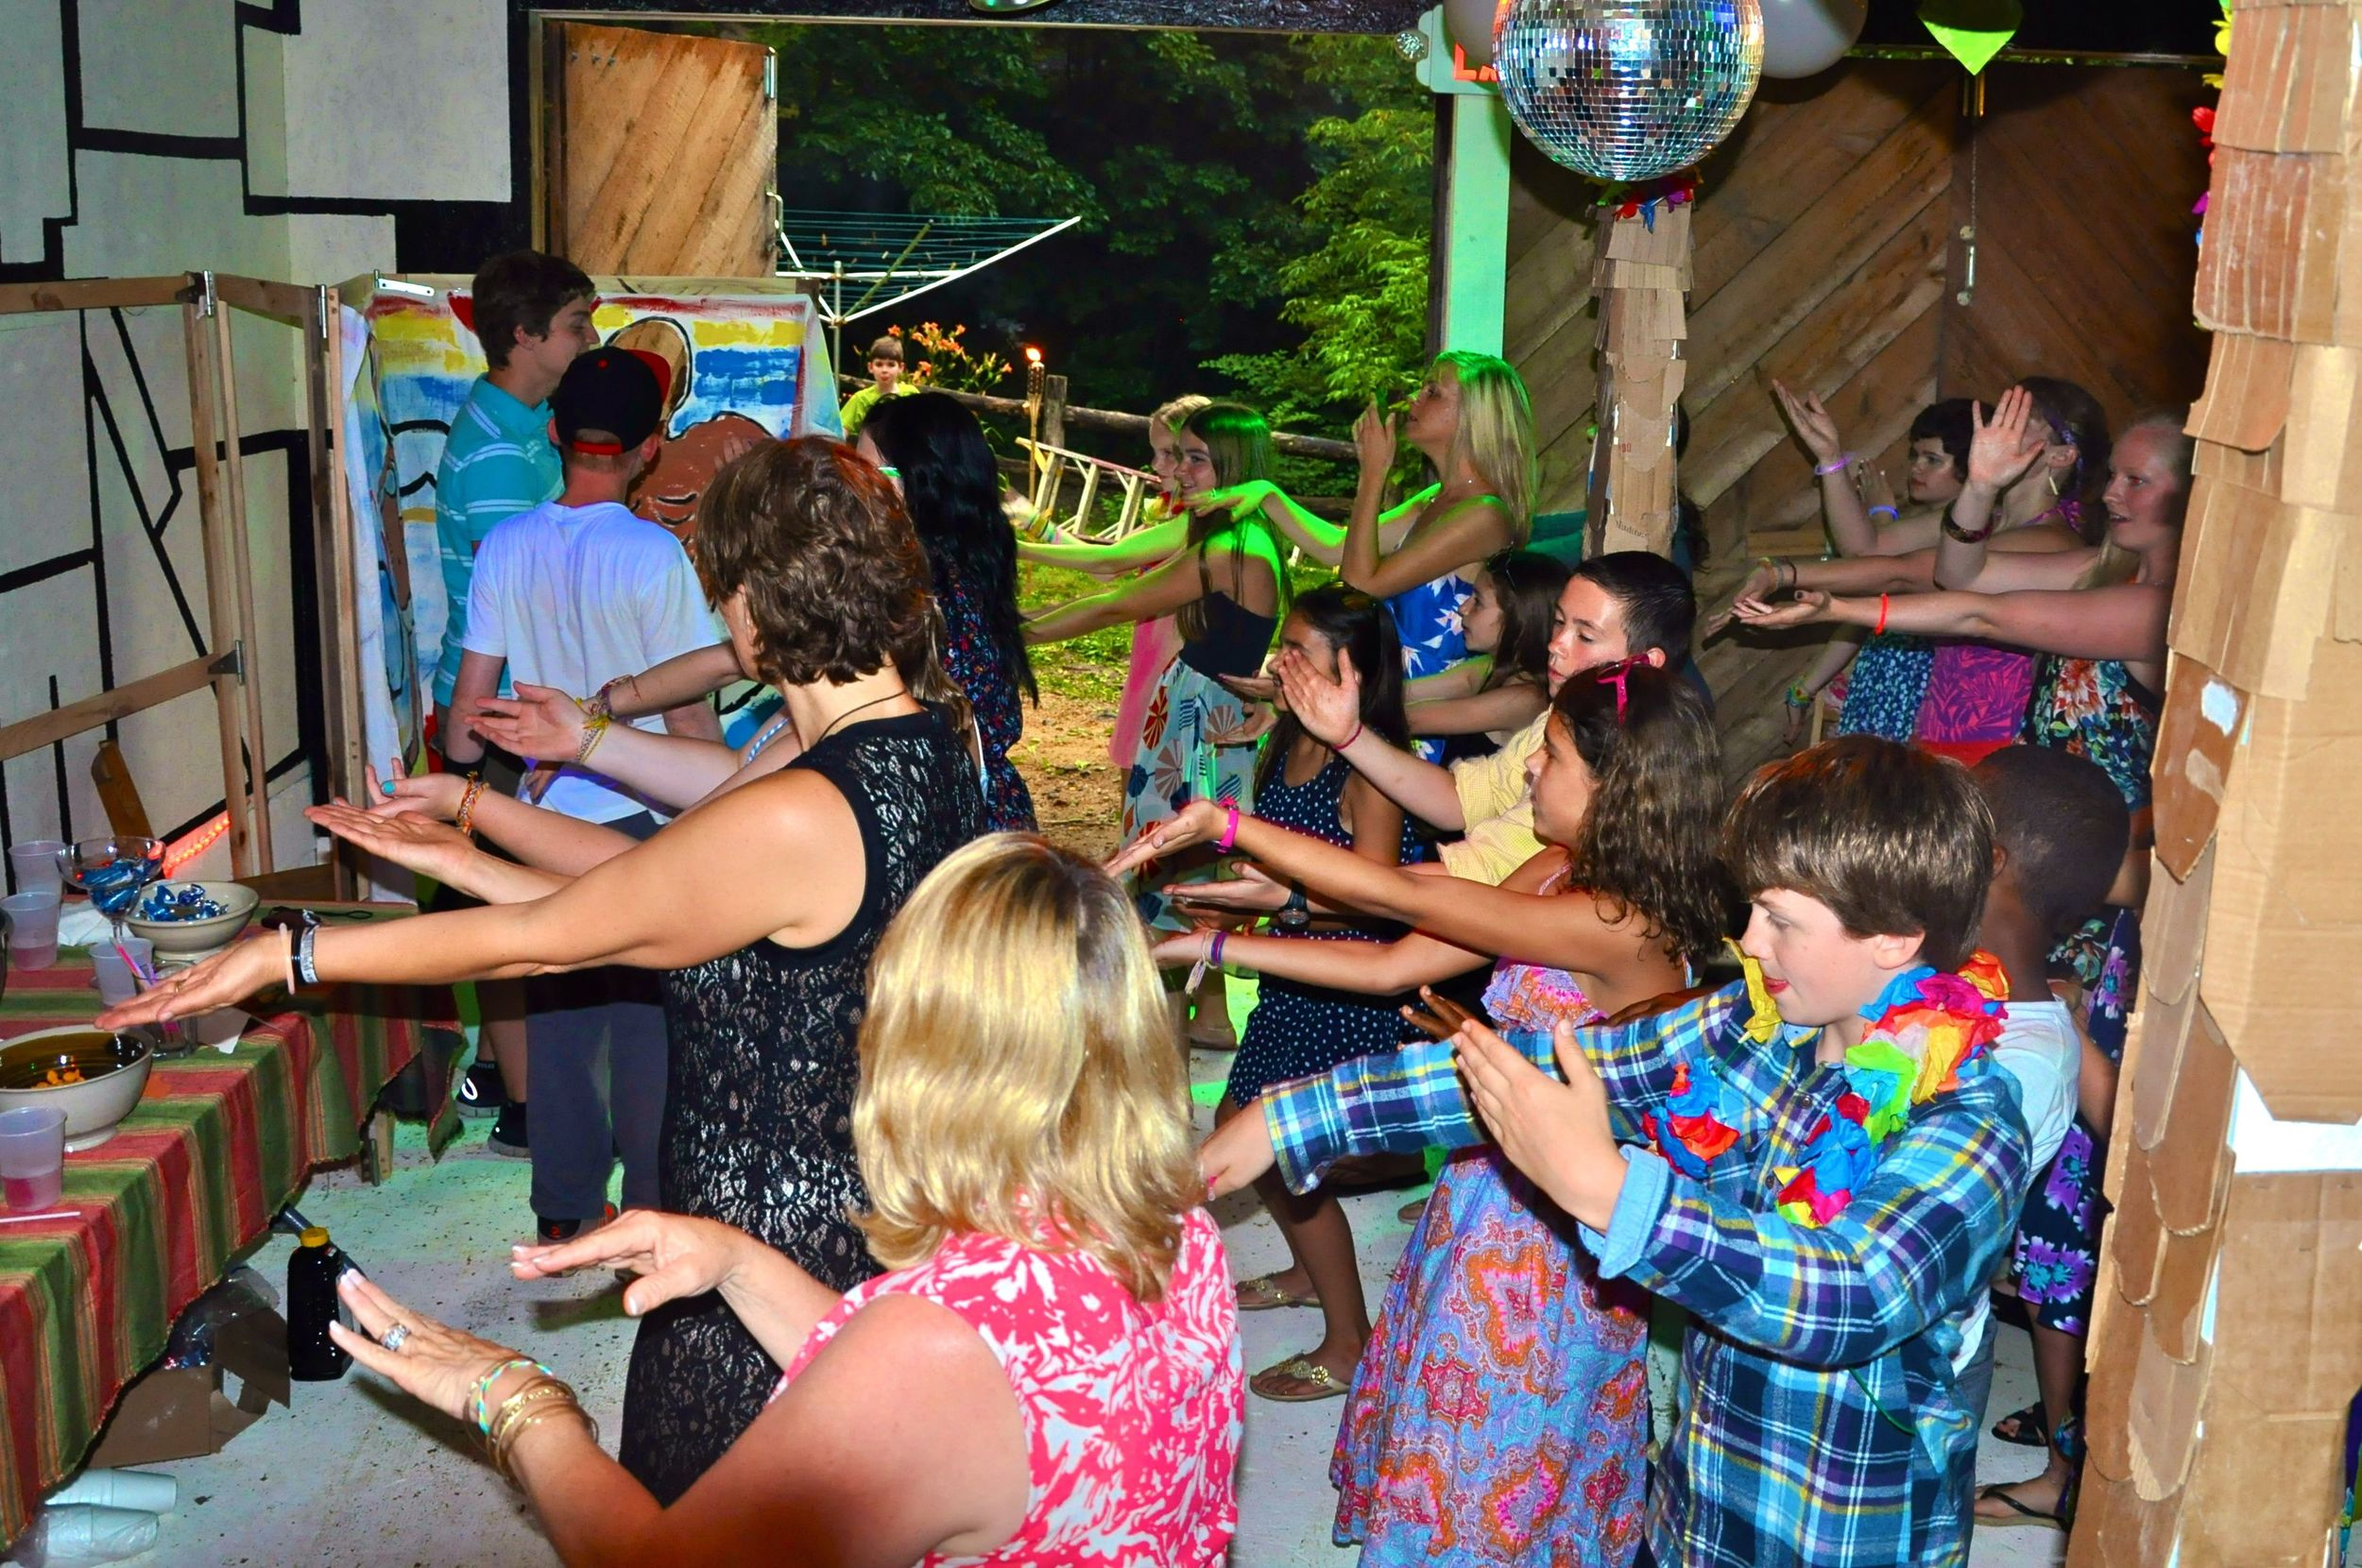 the-campers-and-the-staff-dance-the-macarena-during-our-friday-night-dance.jpg